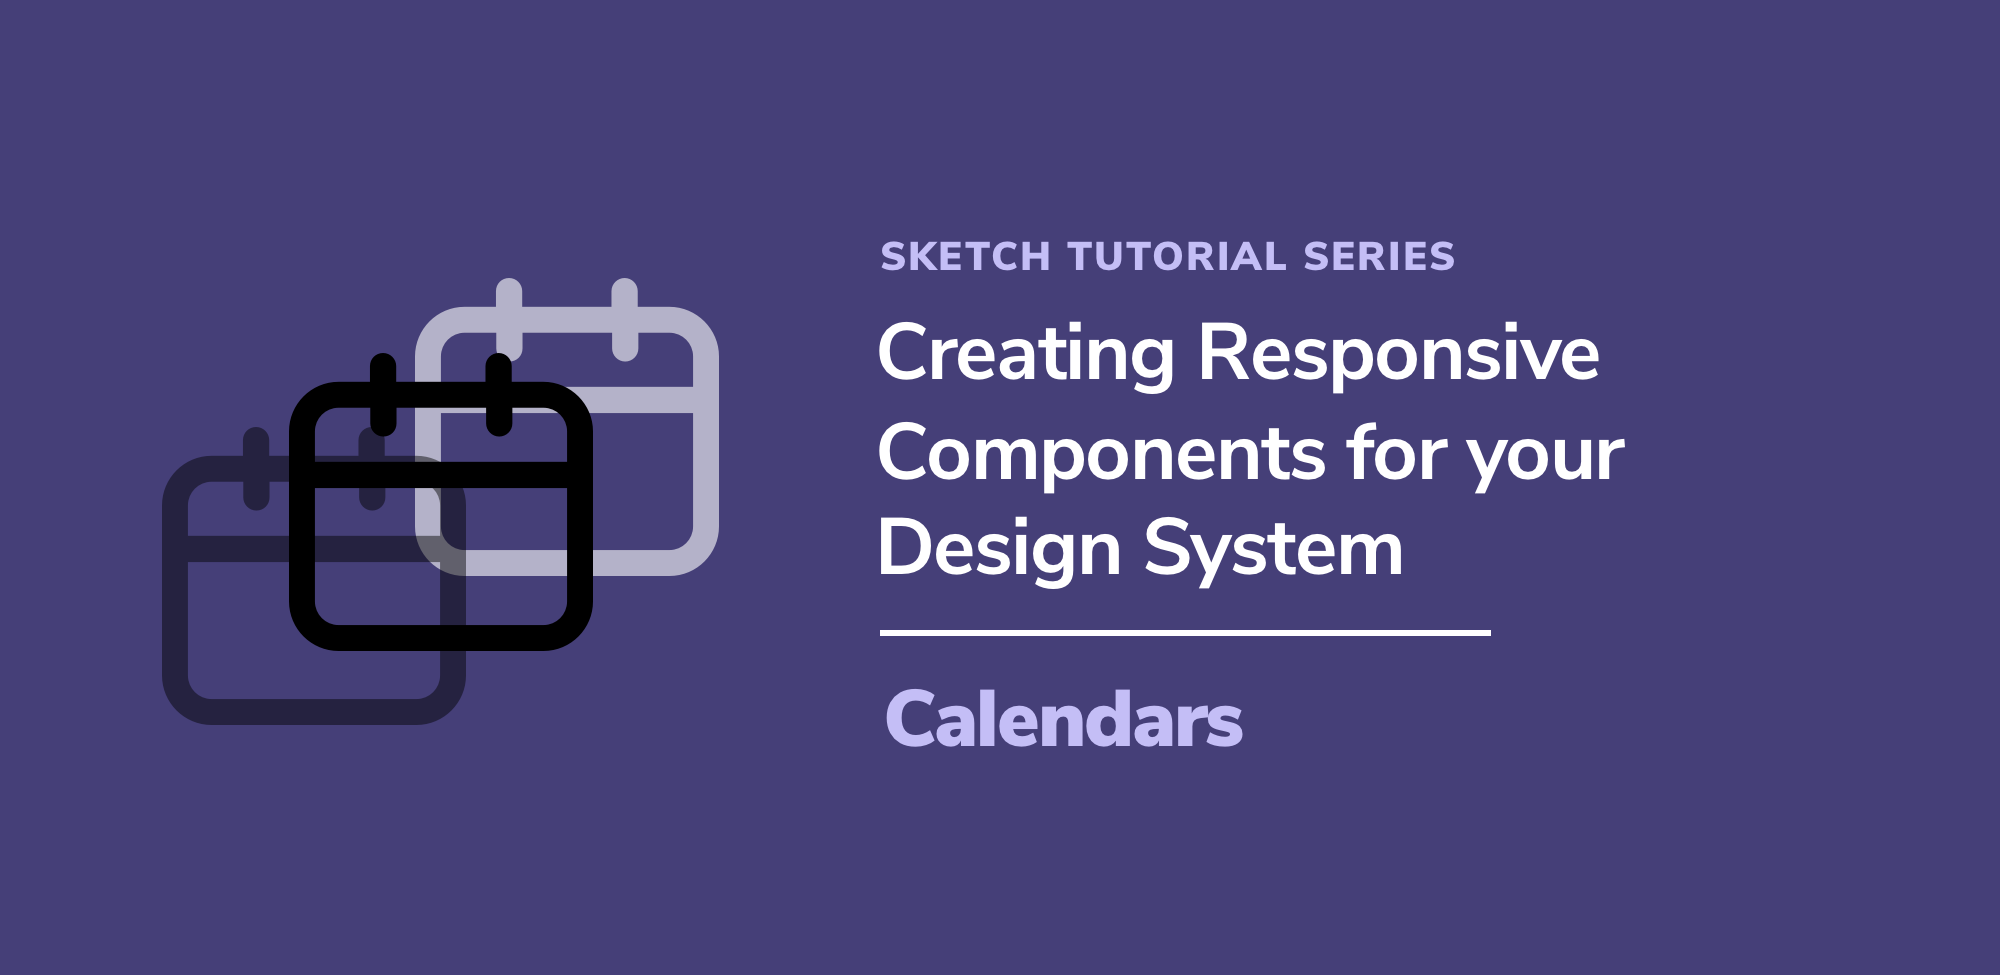 Creating Responsive Components for your Design System: Calendars